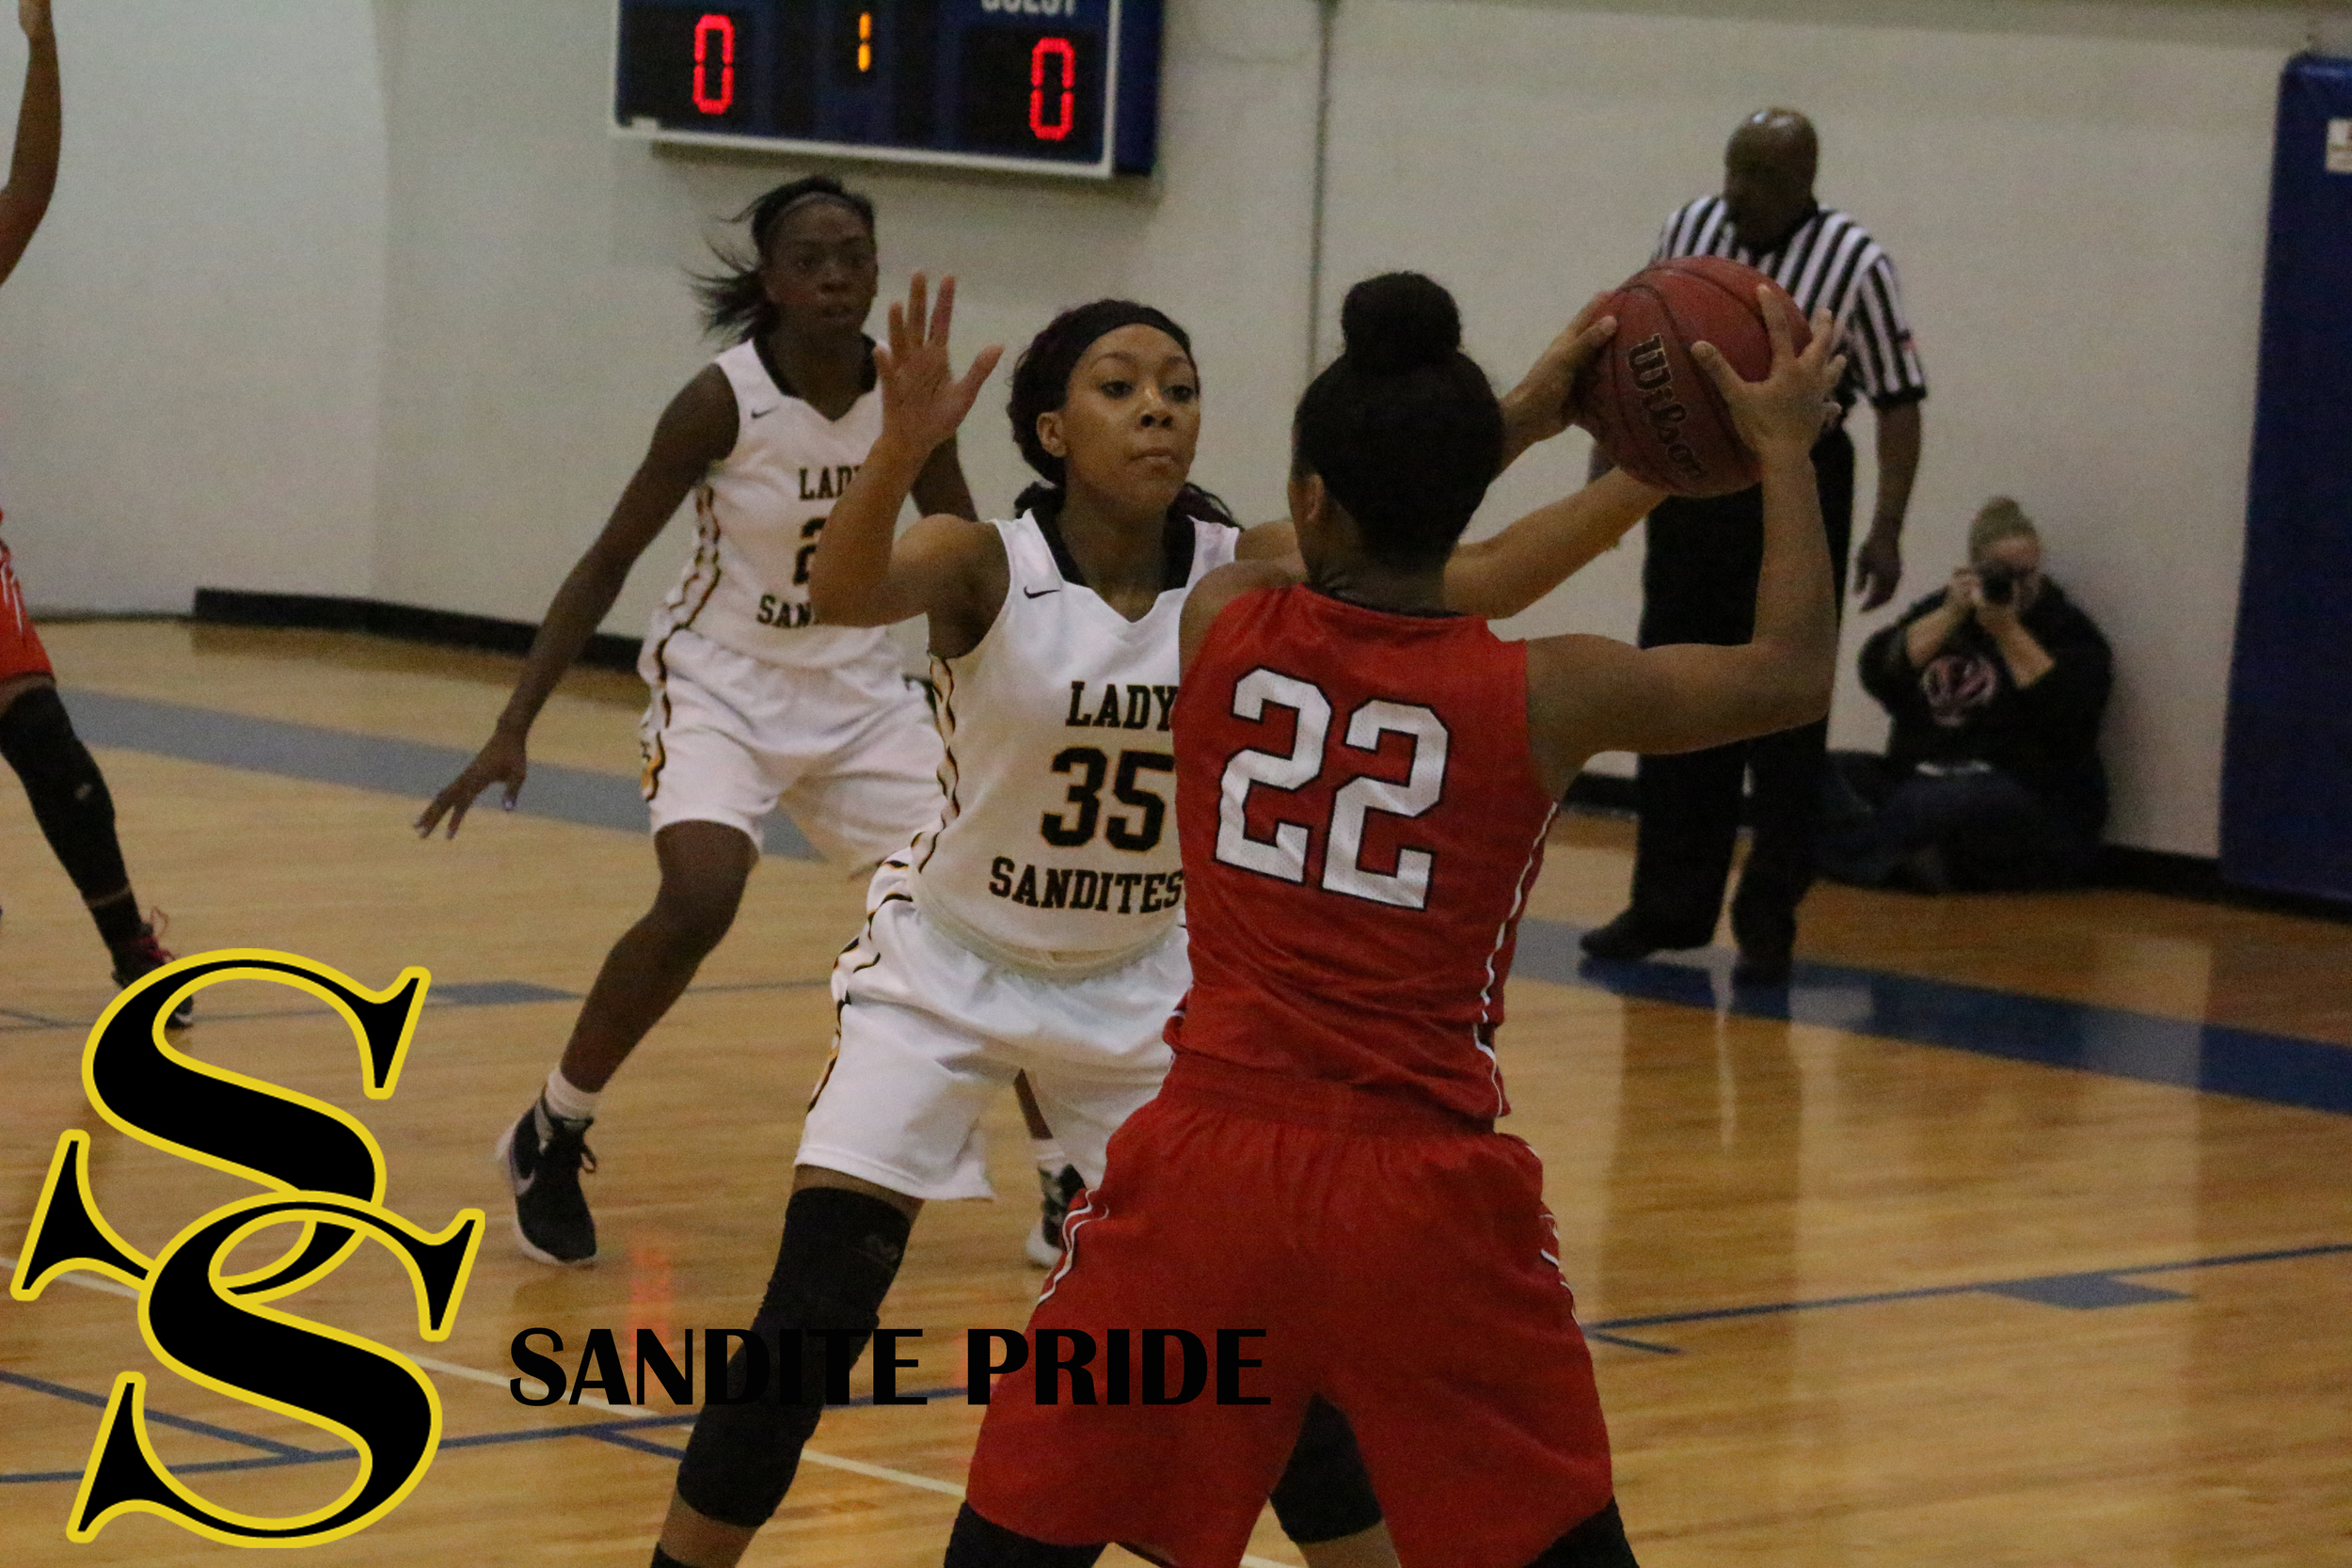 Freshman Destiny Johnson scored a team-high 15 points in a 41-32 playoff win over Union Thursday night.